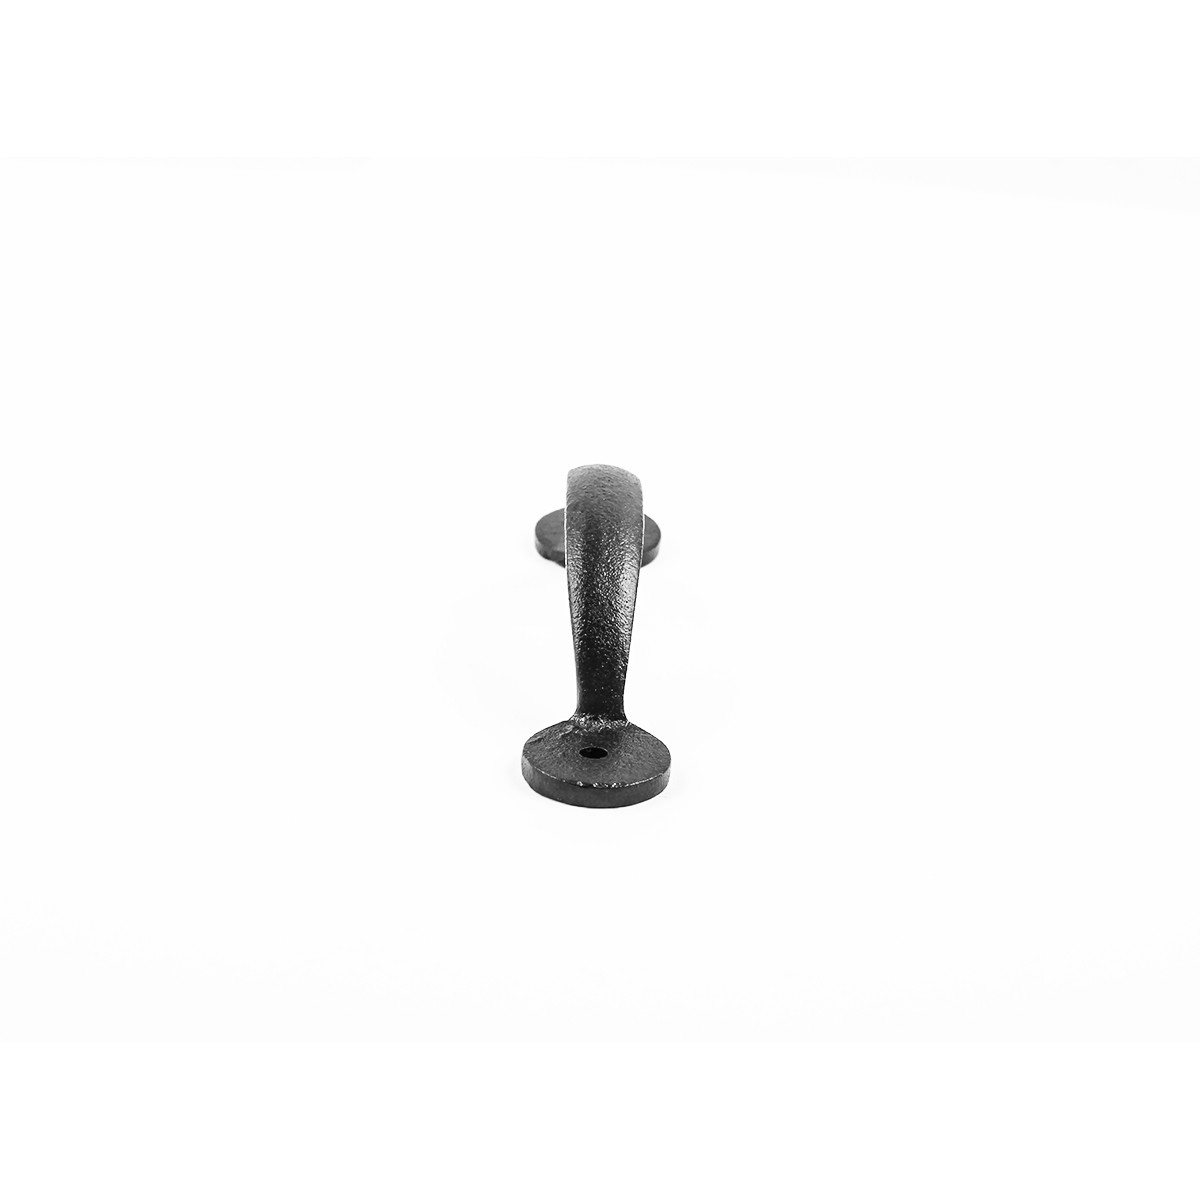 Door or Drawer Pull Bean Black Wrought Iron 4 78 Wrought Iron Door Pulls Black Door Pulls Antique Door Pulls For Cabinets